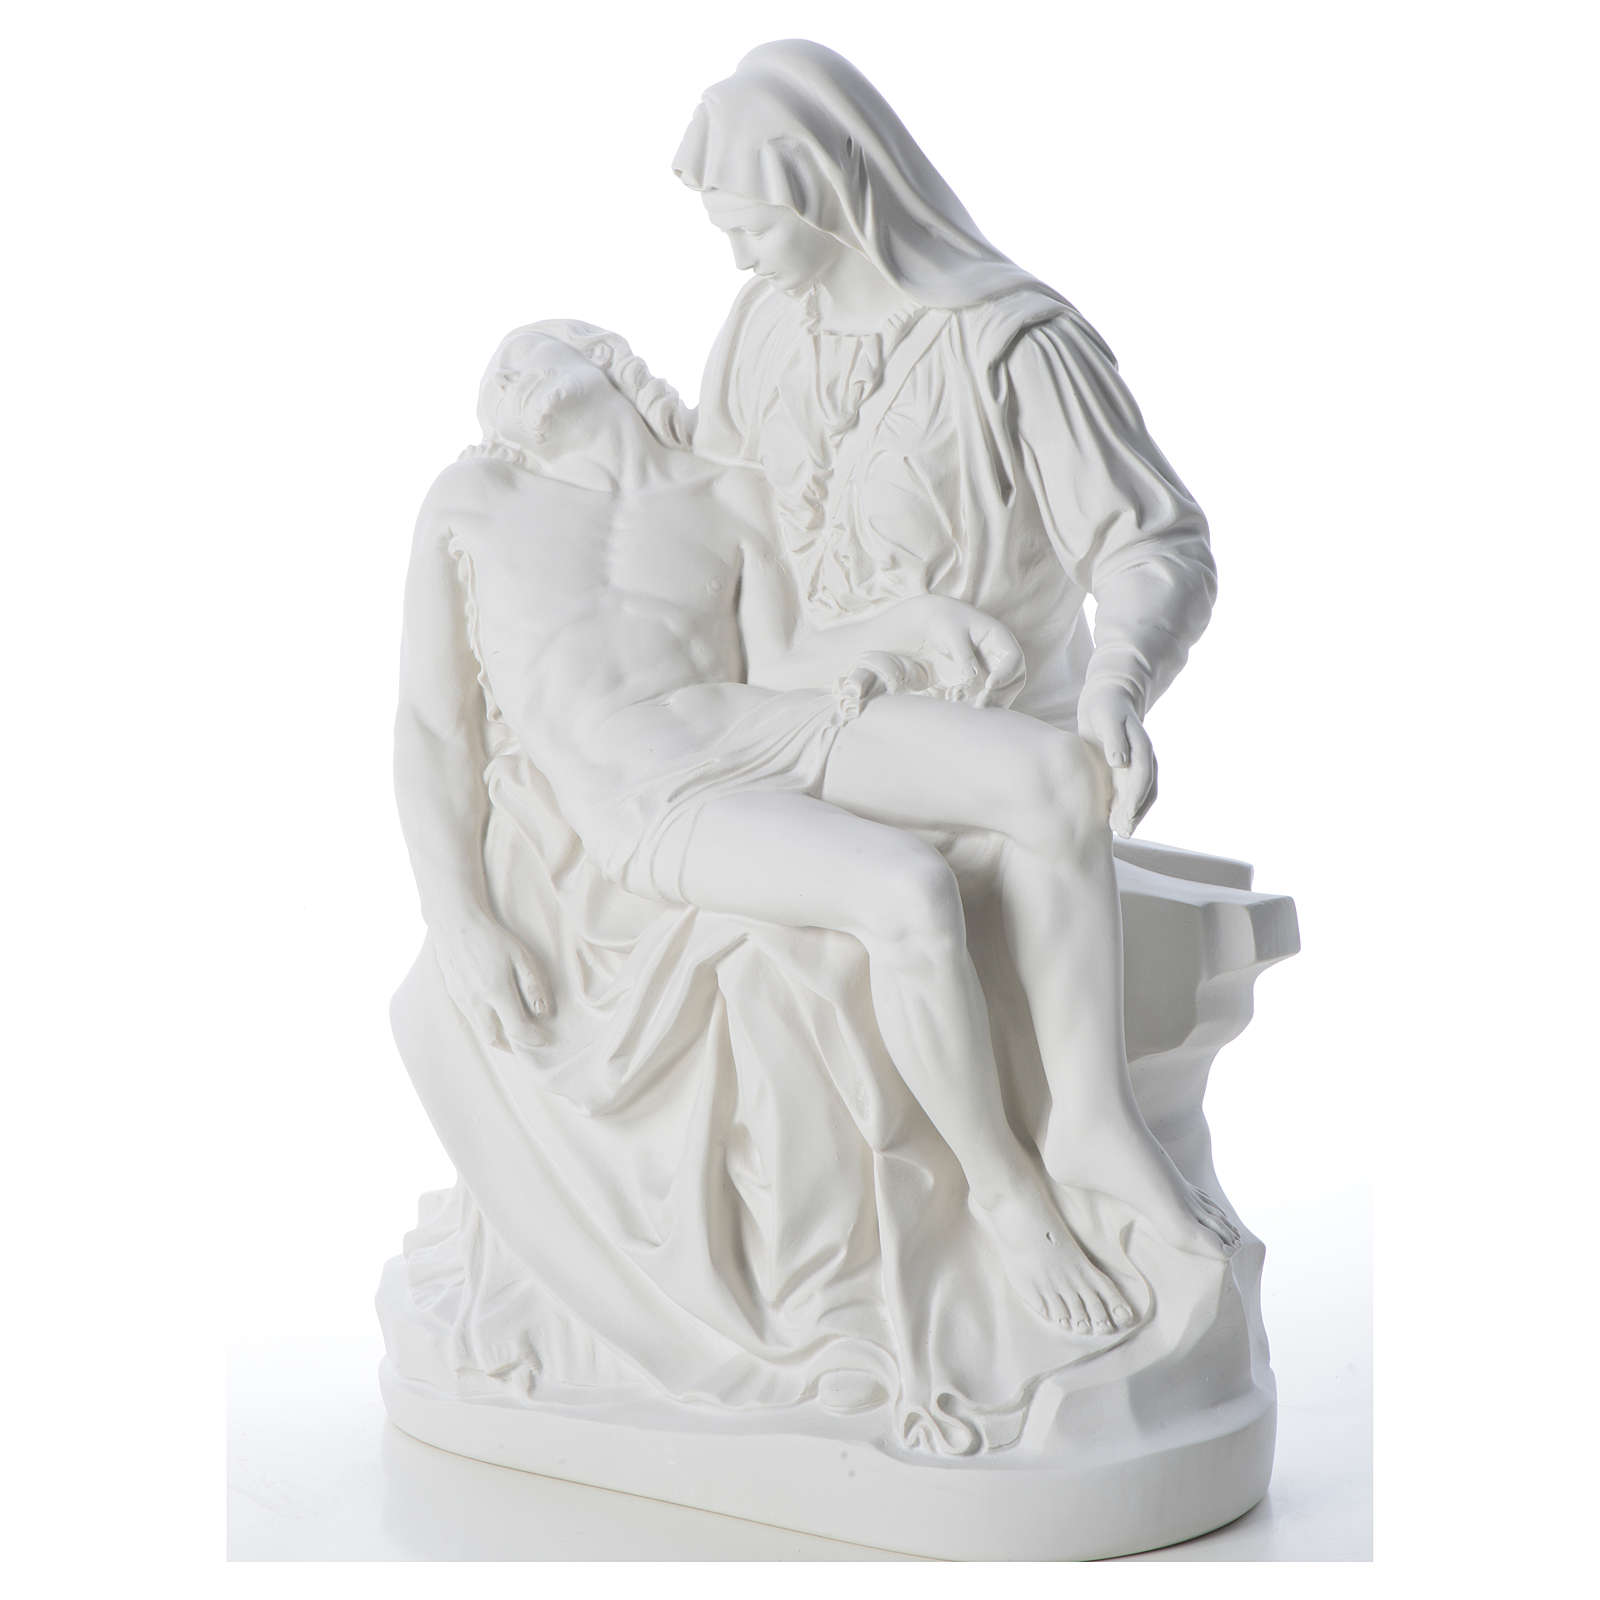 Pietà statue made of reconstituted marble 53 cm 4